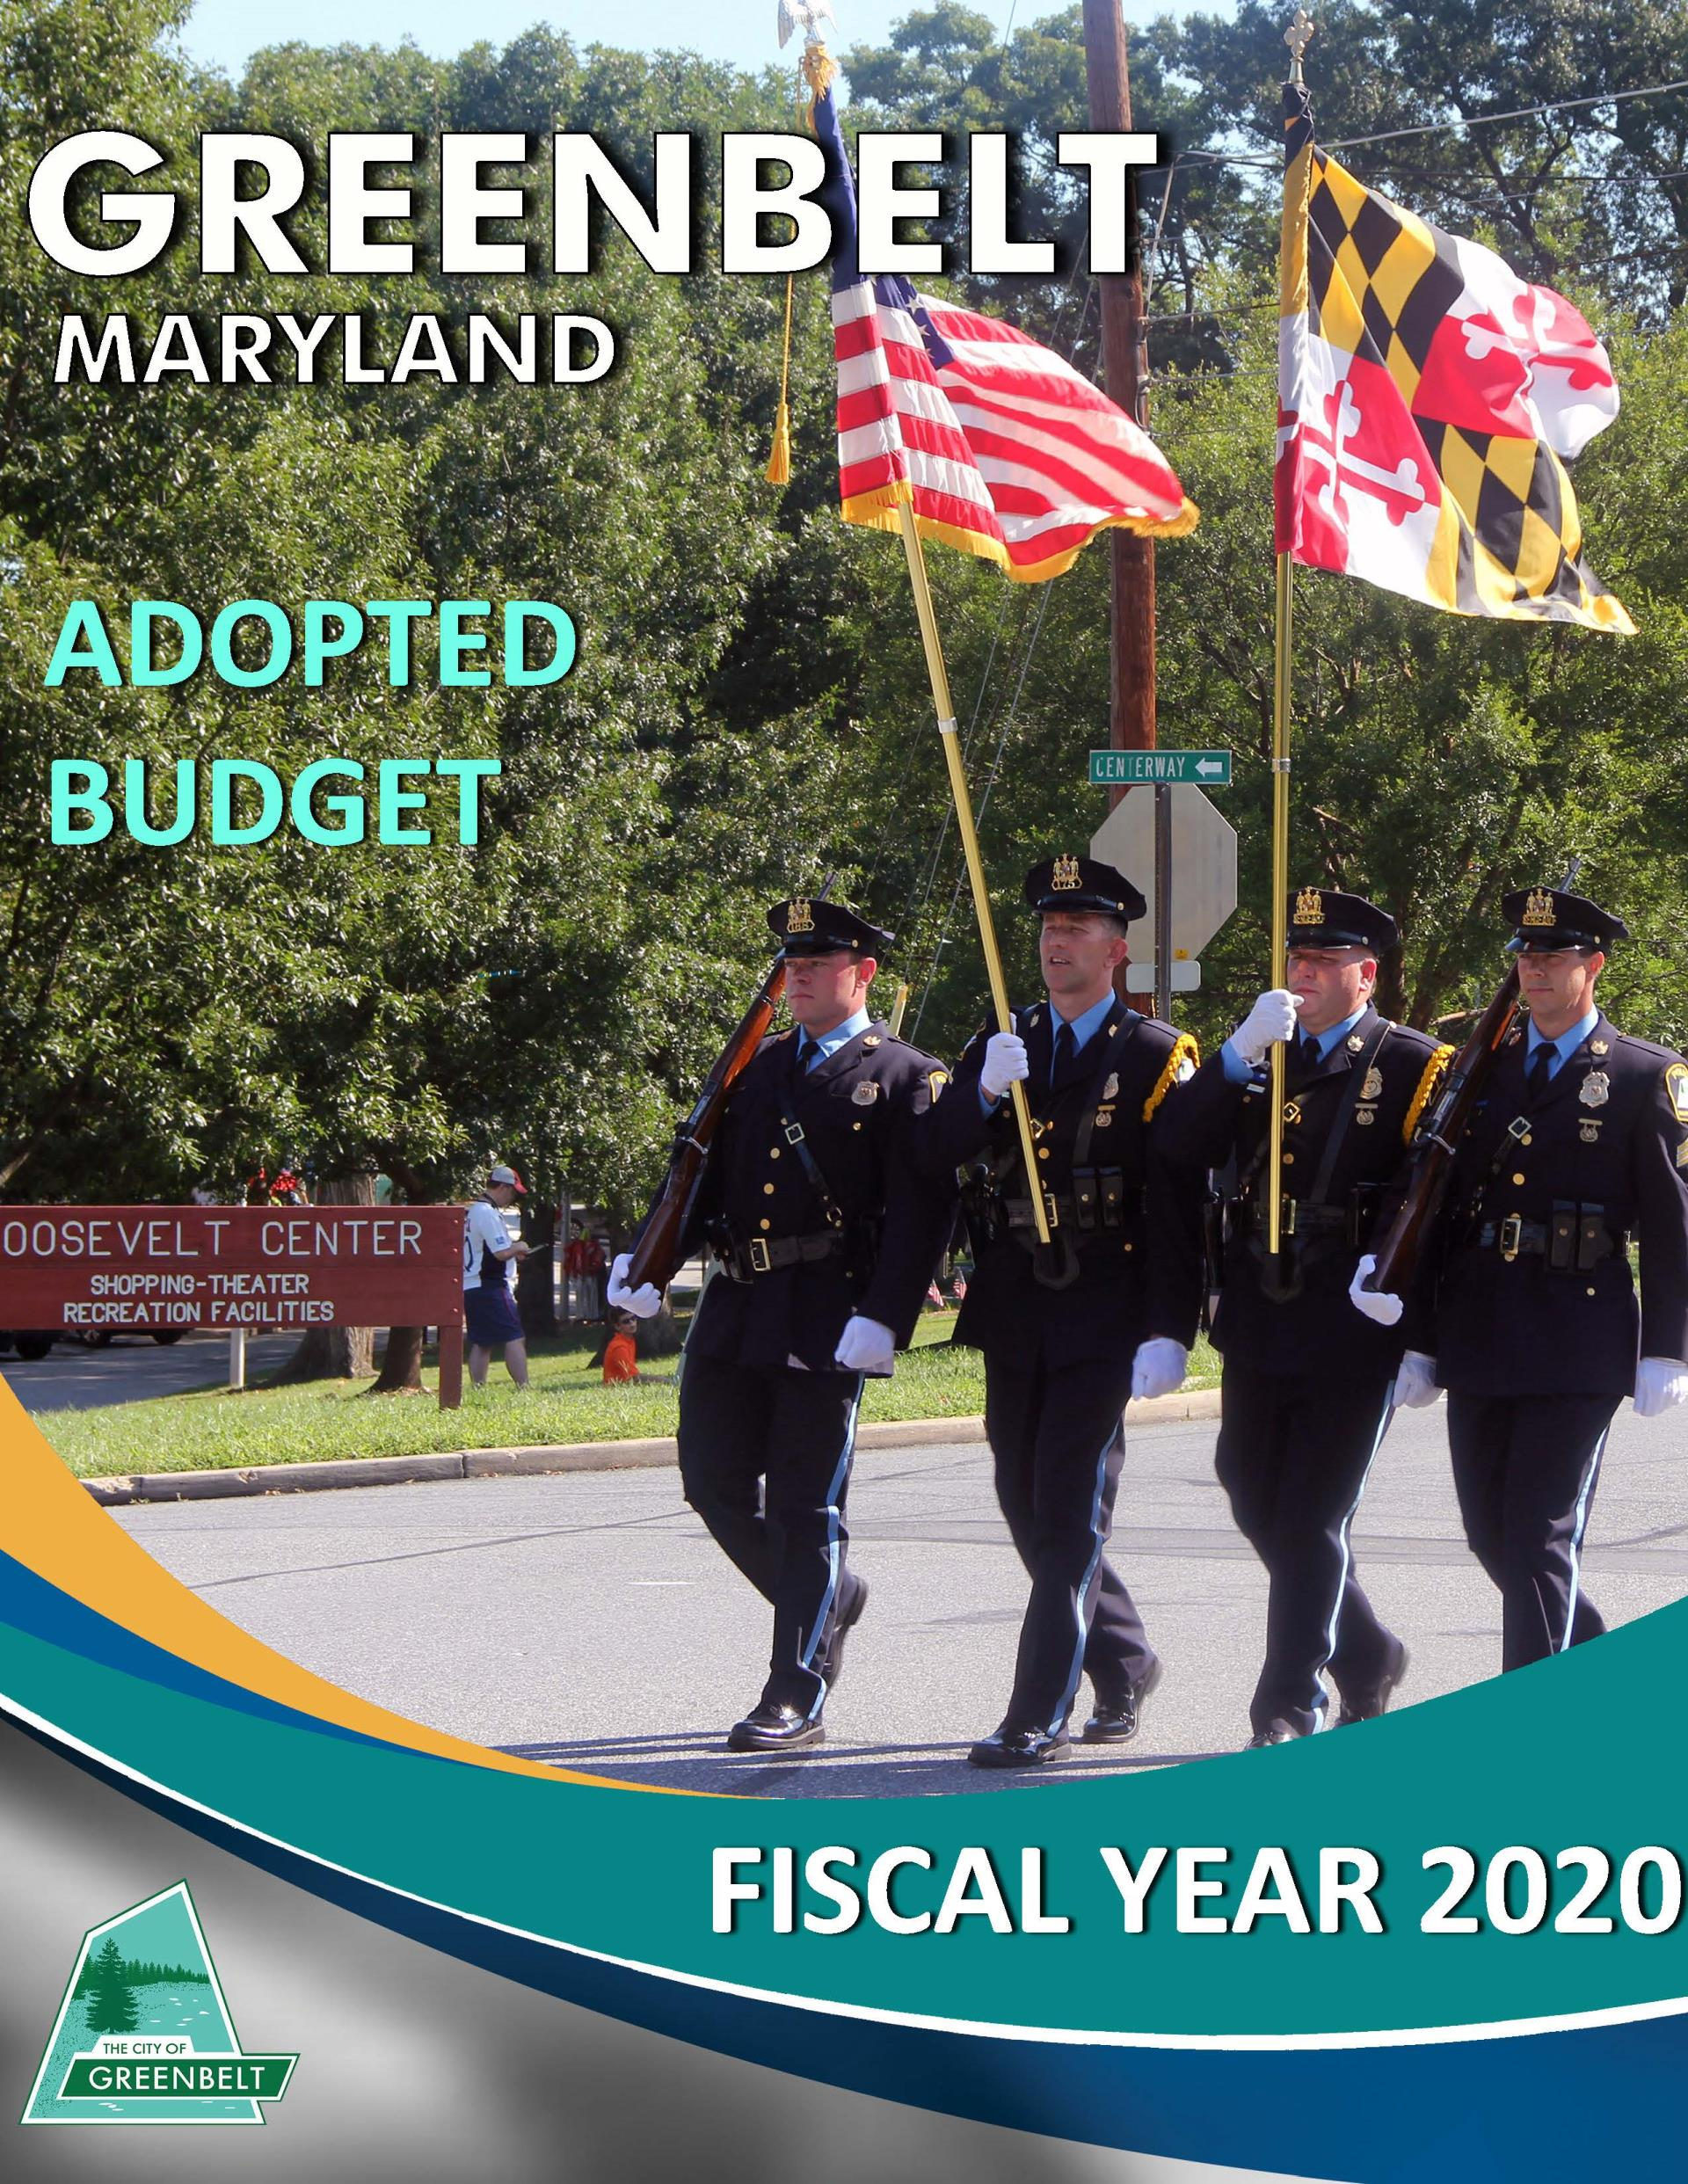 FY 2020 Adopted Budget now available!